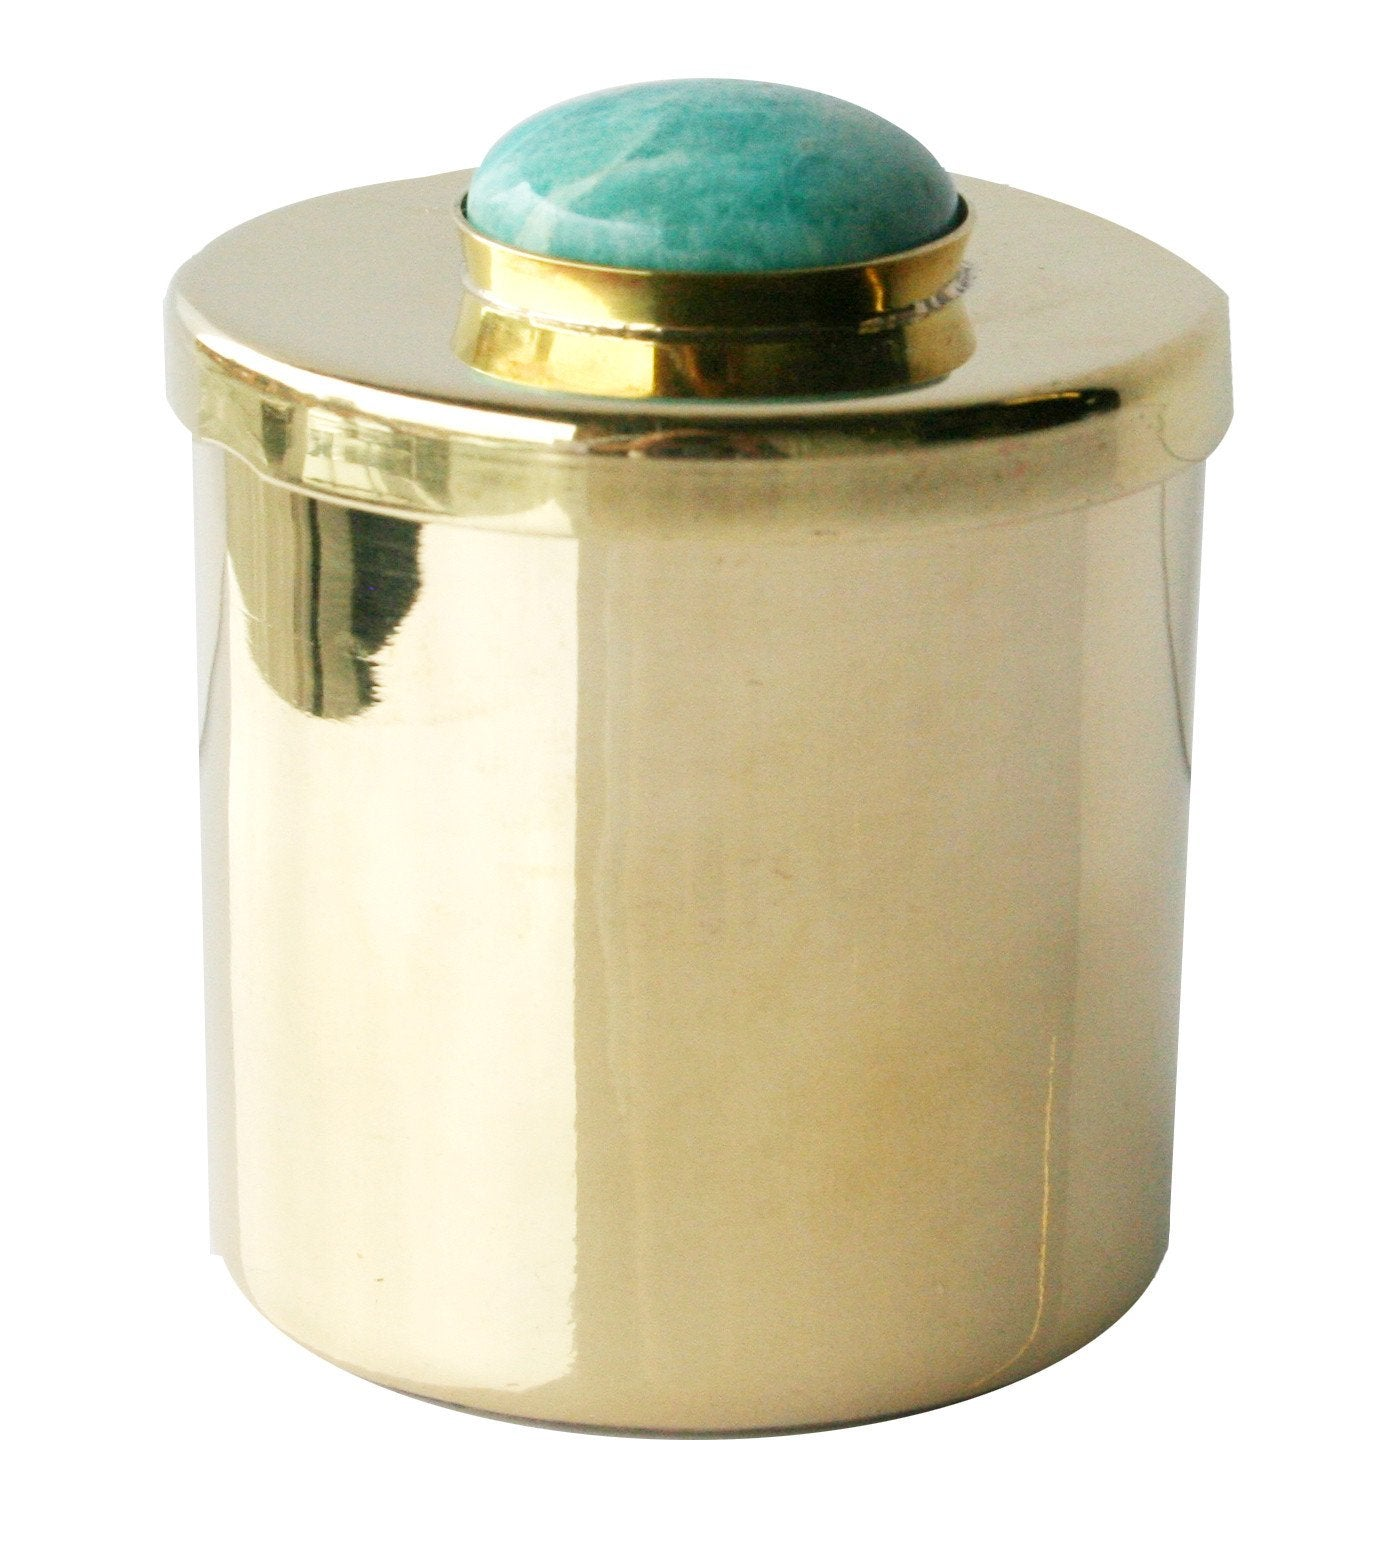 Lane Small Ring Box w/ Amazonite - LoveEmme, Product_Type, Product_Vendor